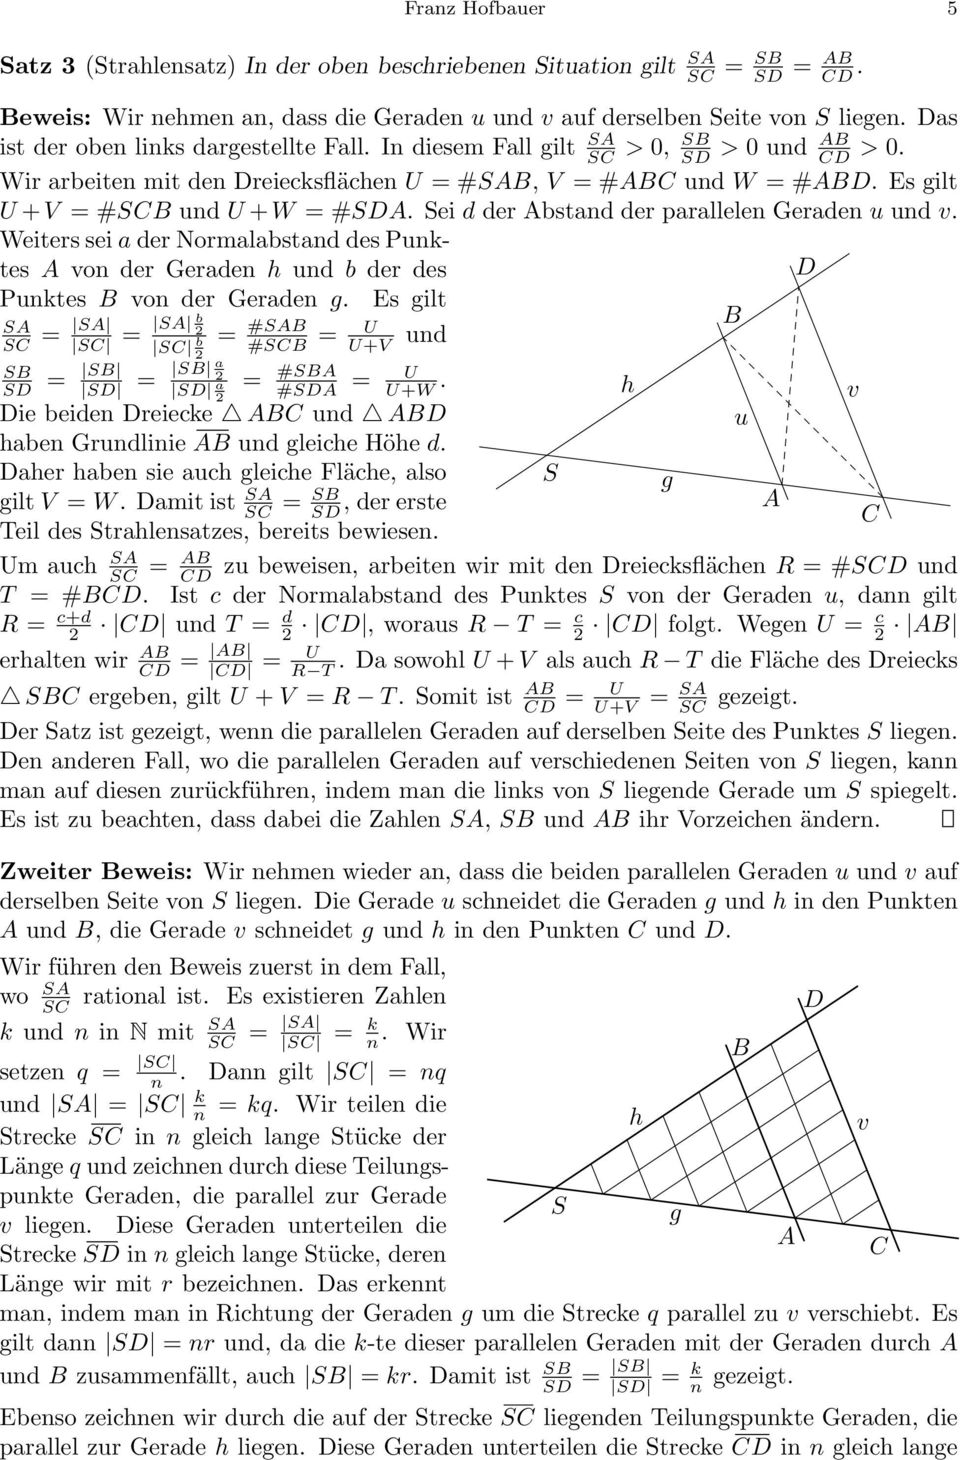 Beautiful Steigung Wort Probleme Arbeitsblatt Elaboration - Mathe ...